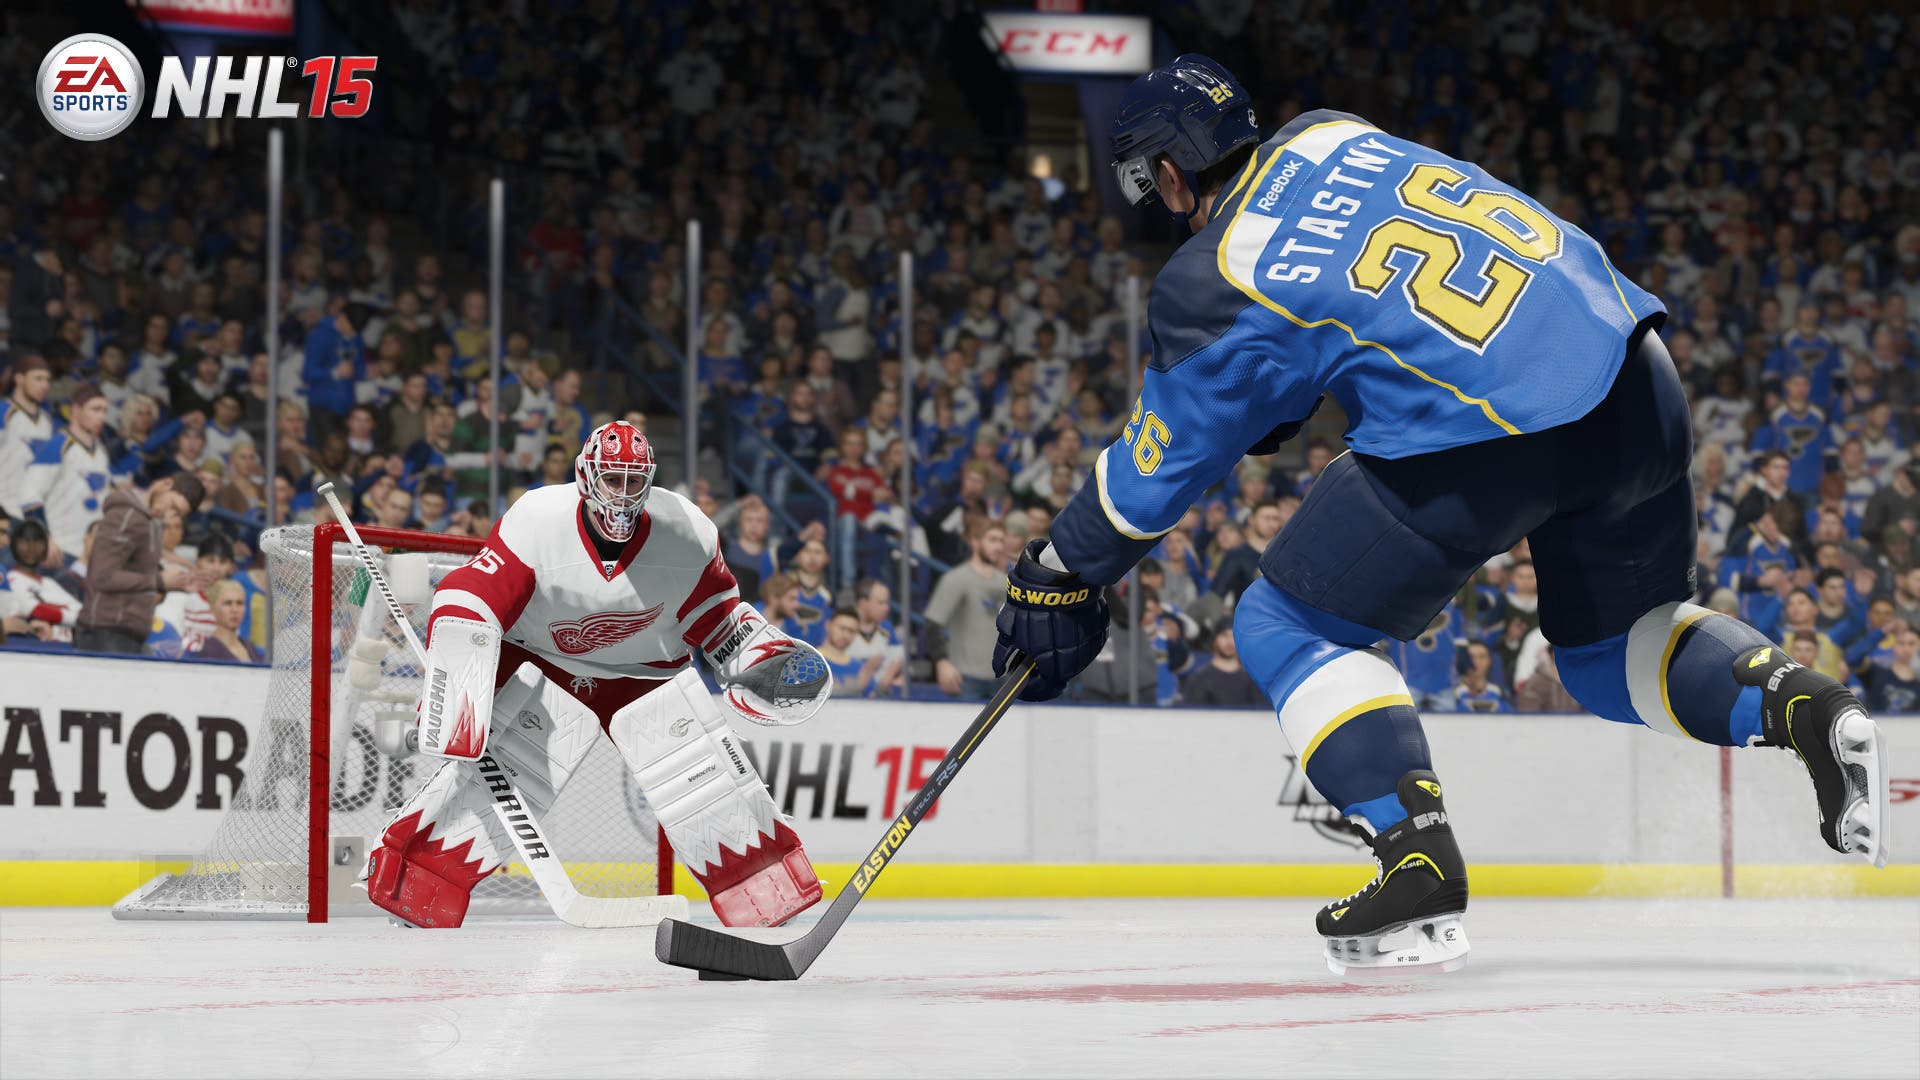 NHL15 featured